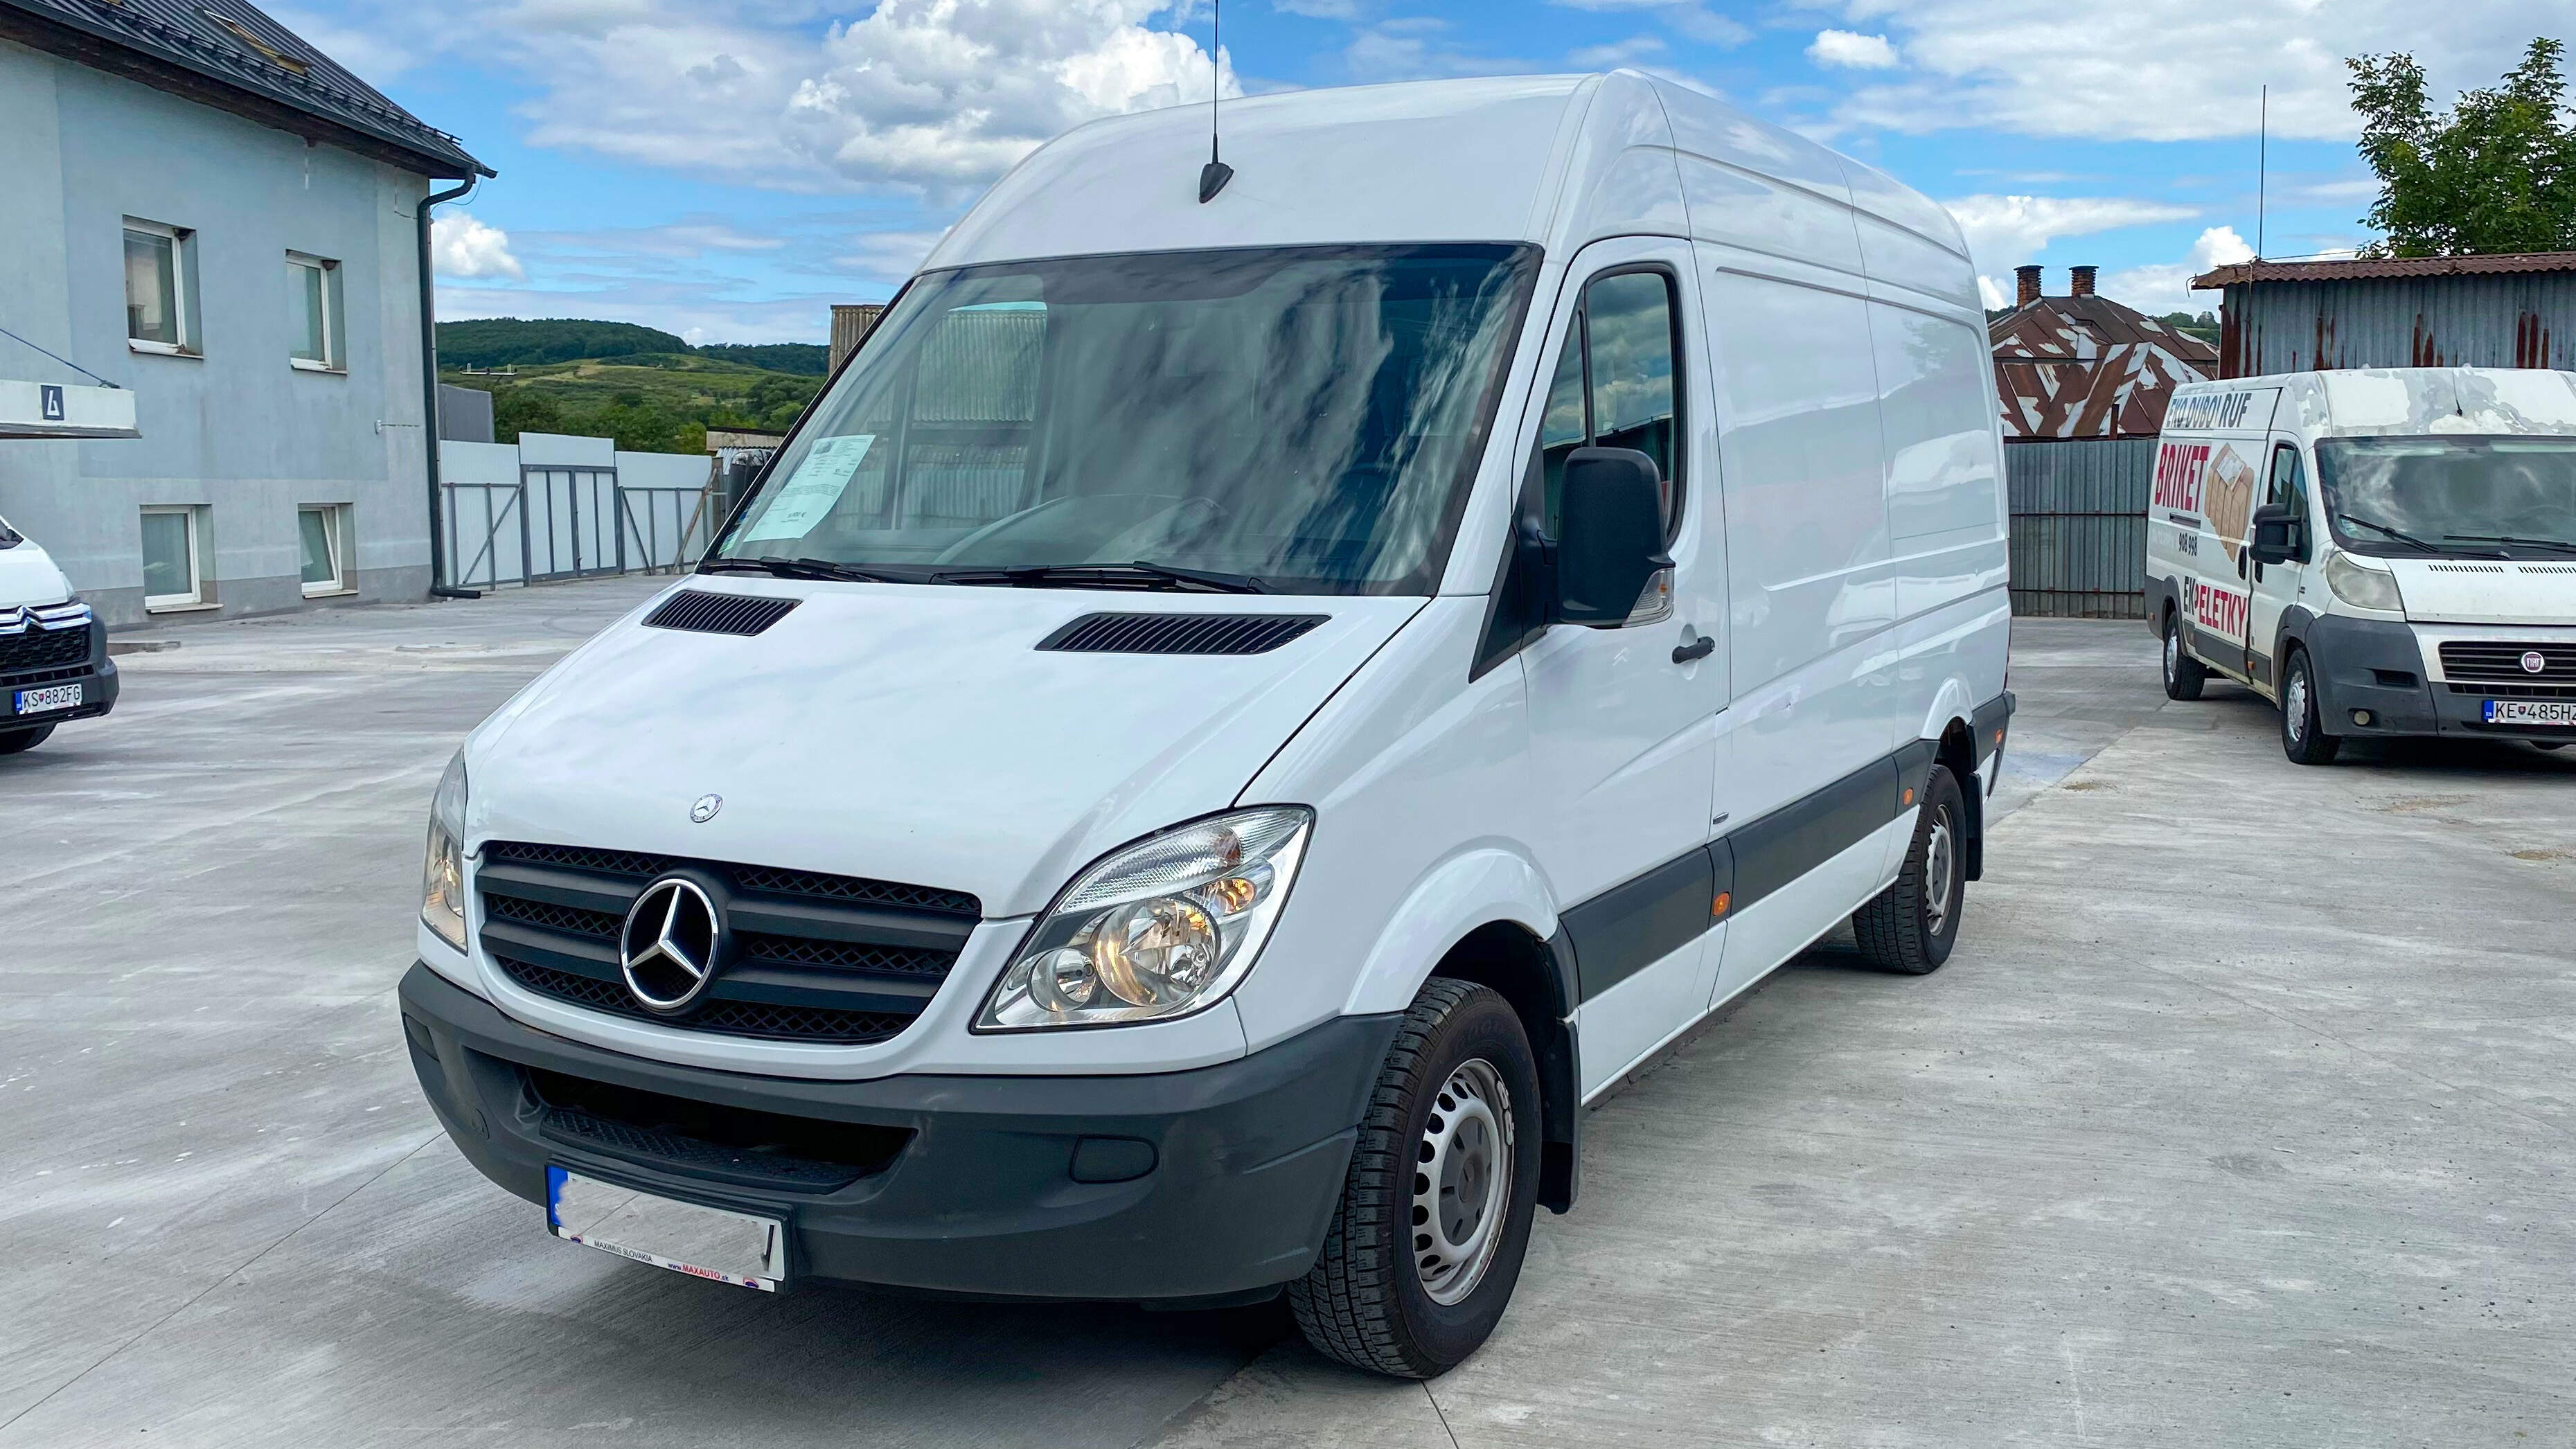 Mercedes-Benz Sprinter 313 CDI 2.2 CDI (47)